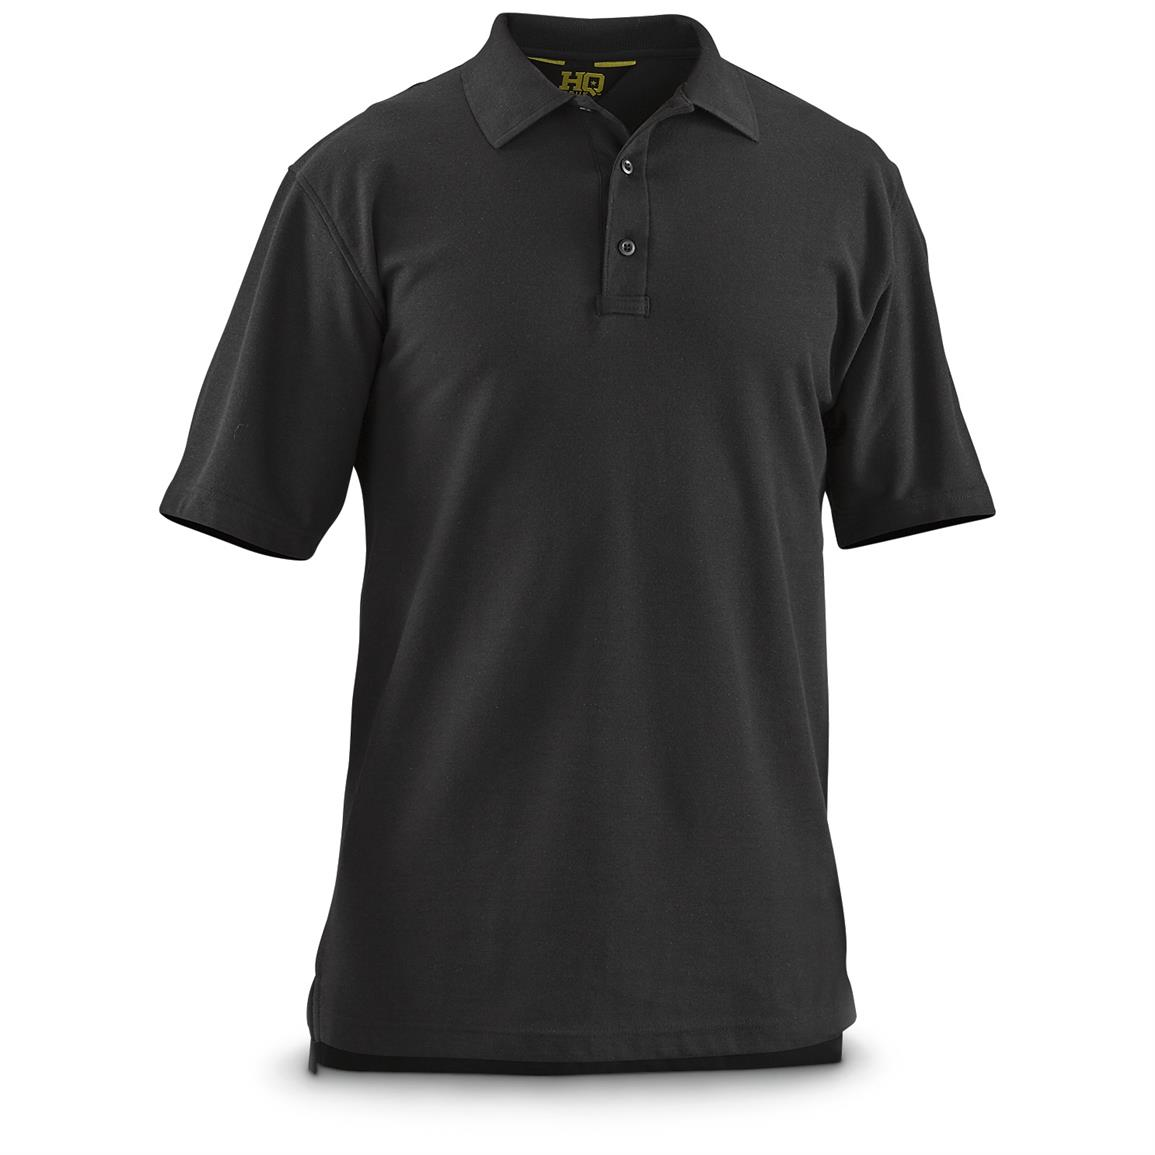 HQ ISSUE Men's Short-Sleeve Tactical Polo Shirt, Black